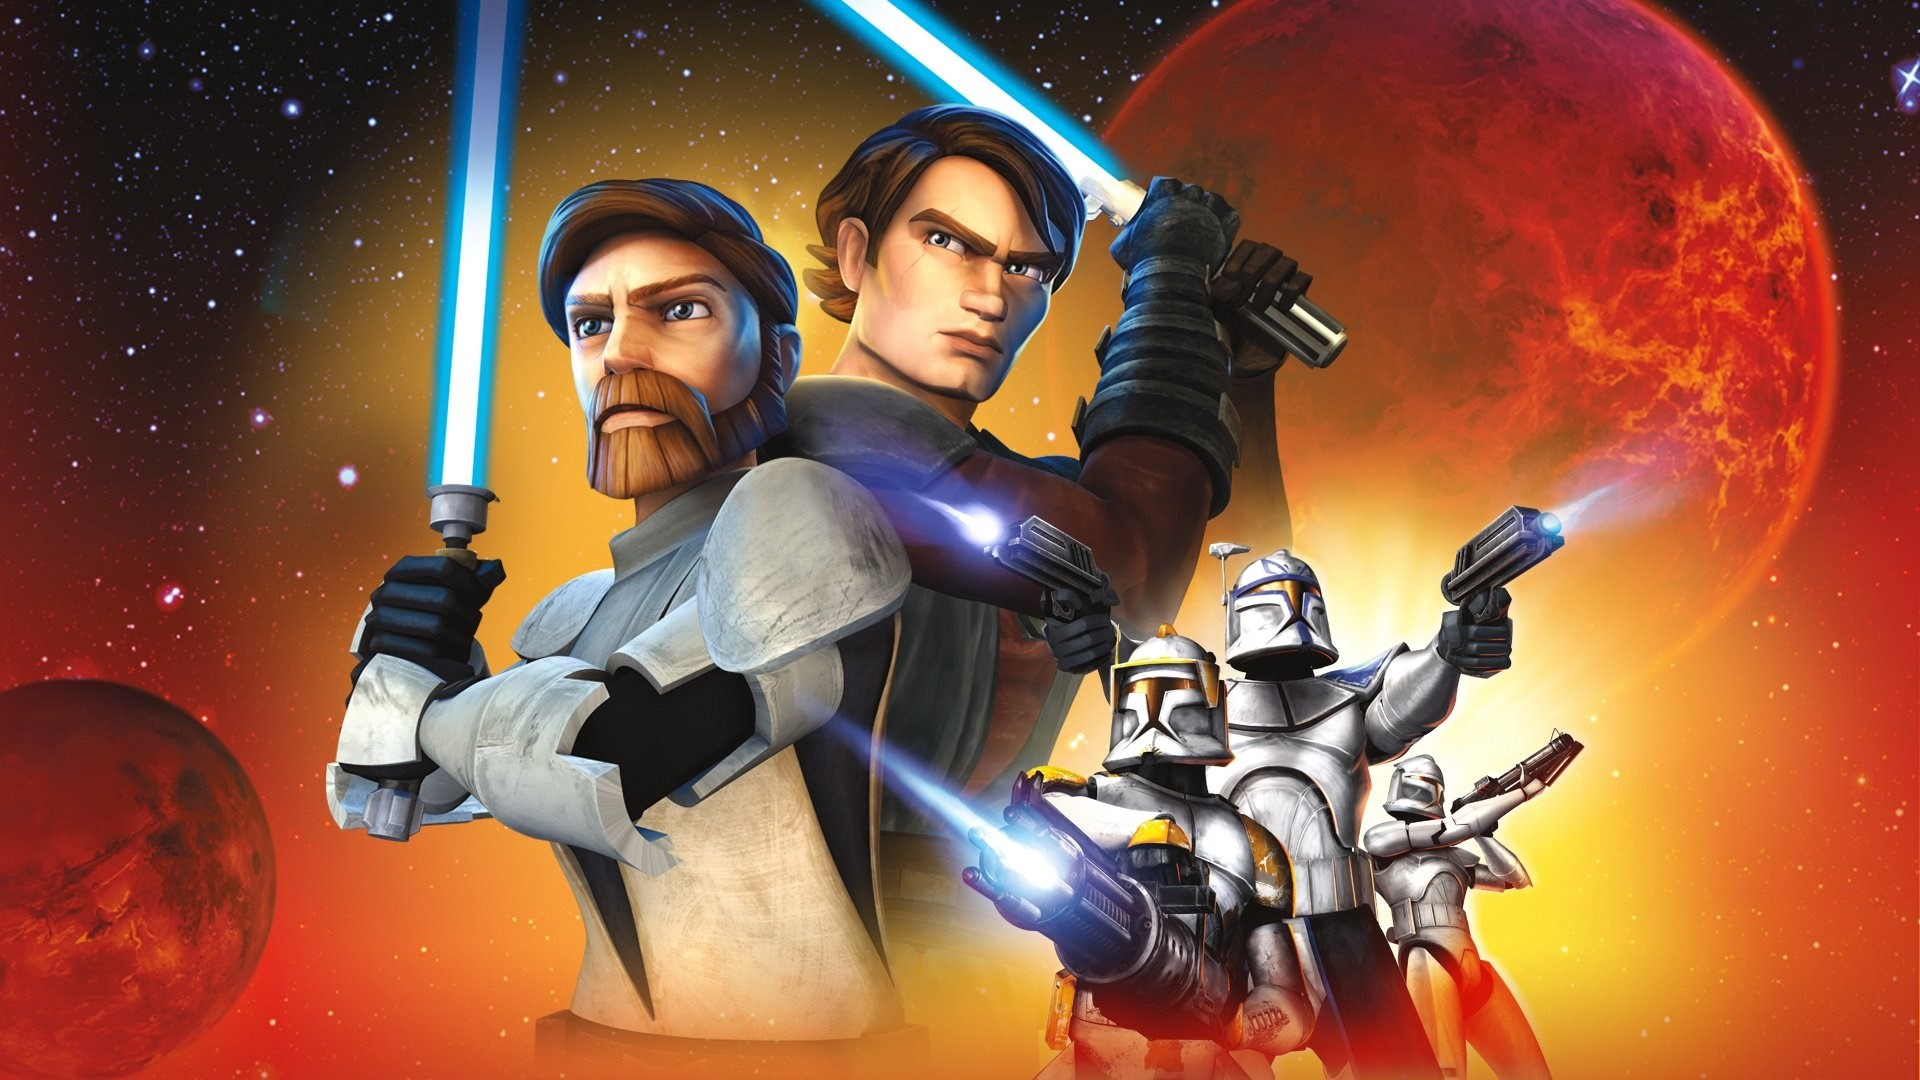 Star Wars the Clone Wars Wallpaper (67+ images)